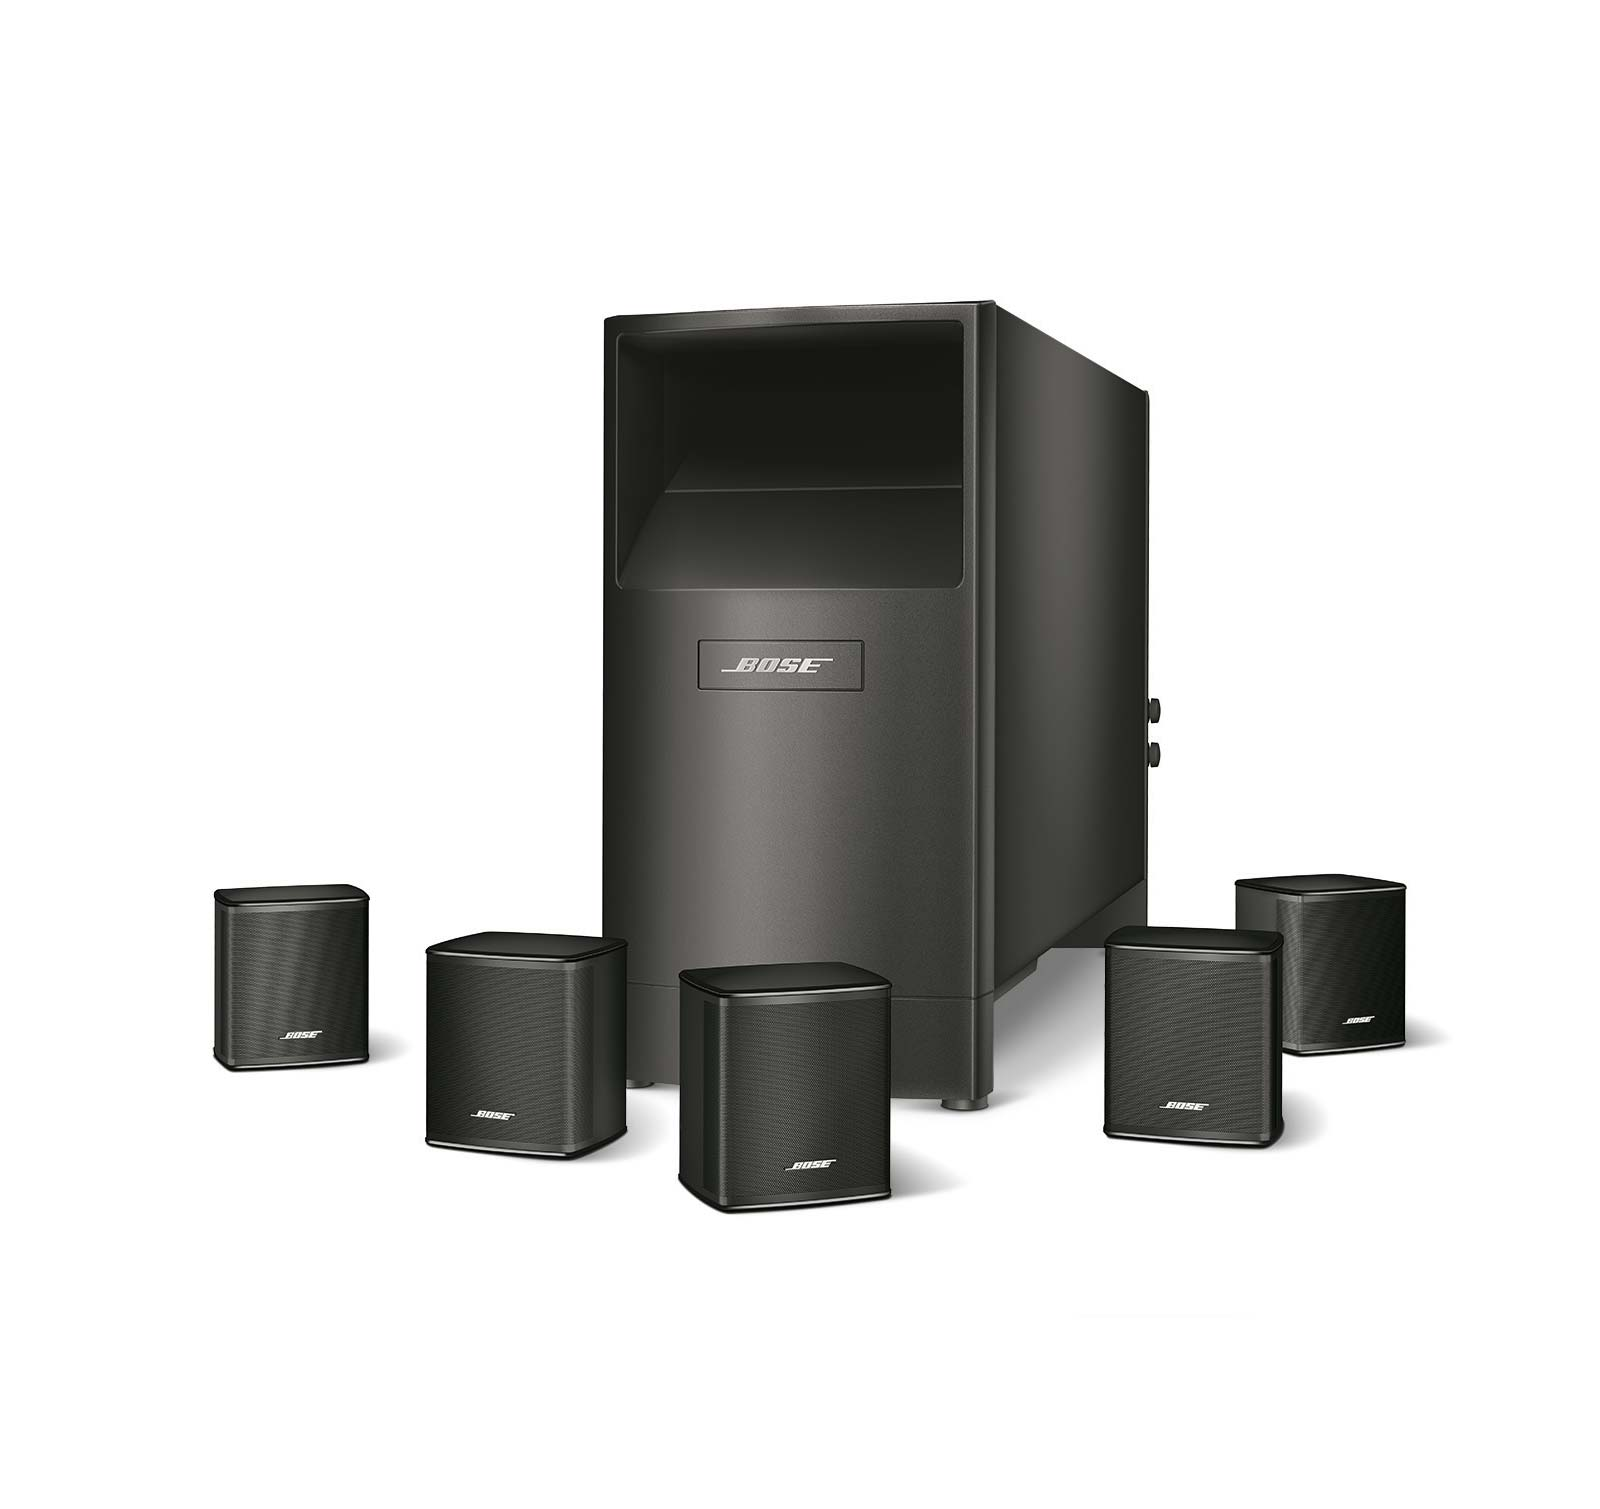 bose acoustimass 6 series v black home theater speaker. Black Bedroom Furniture Sets. Home Design Ideas